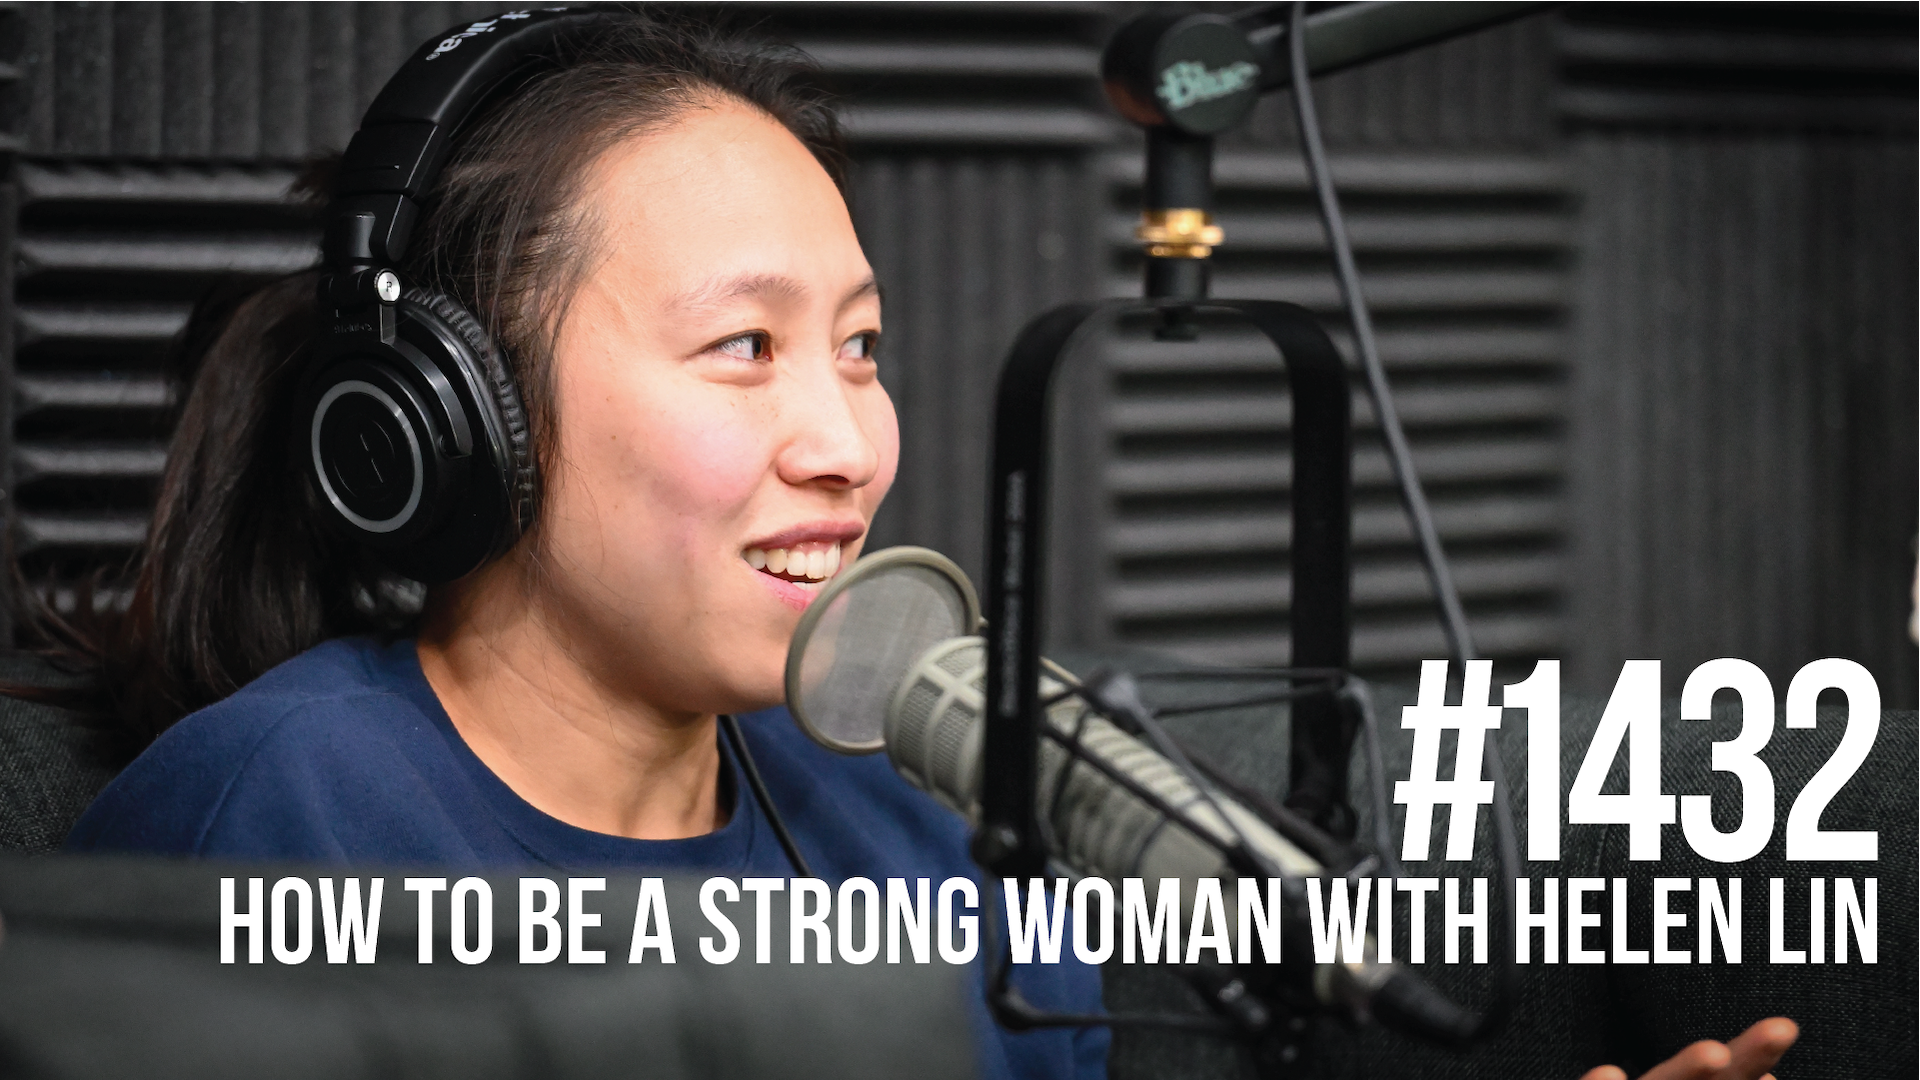 1432: How to Be a Strong Woman With Helen Lin